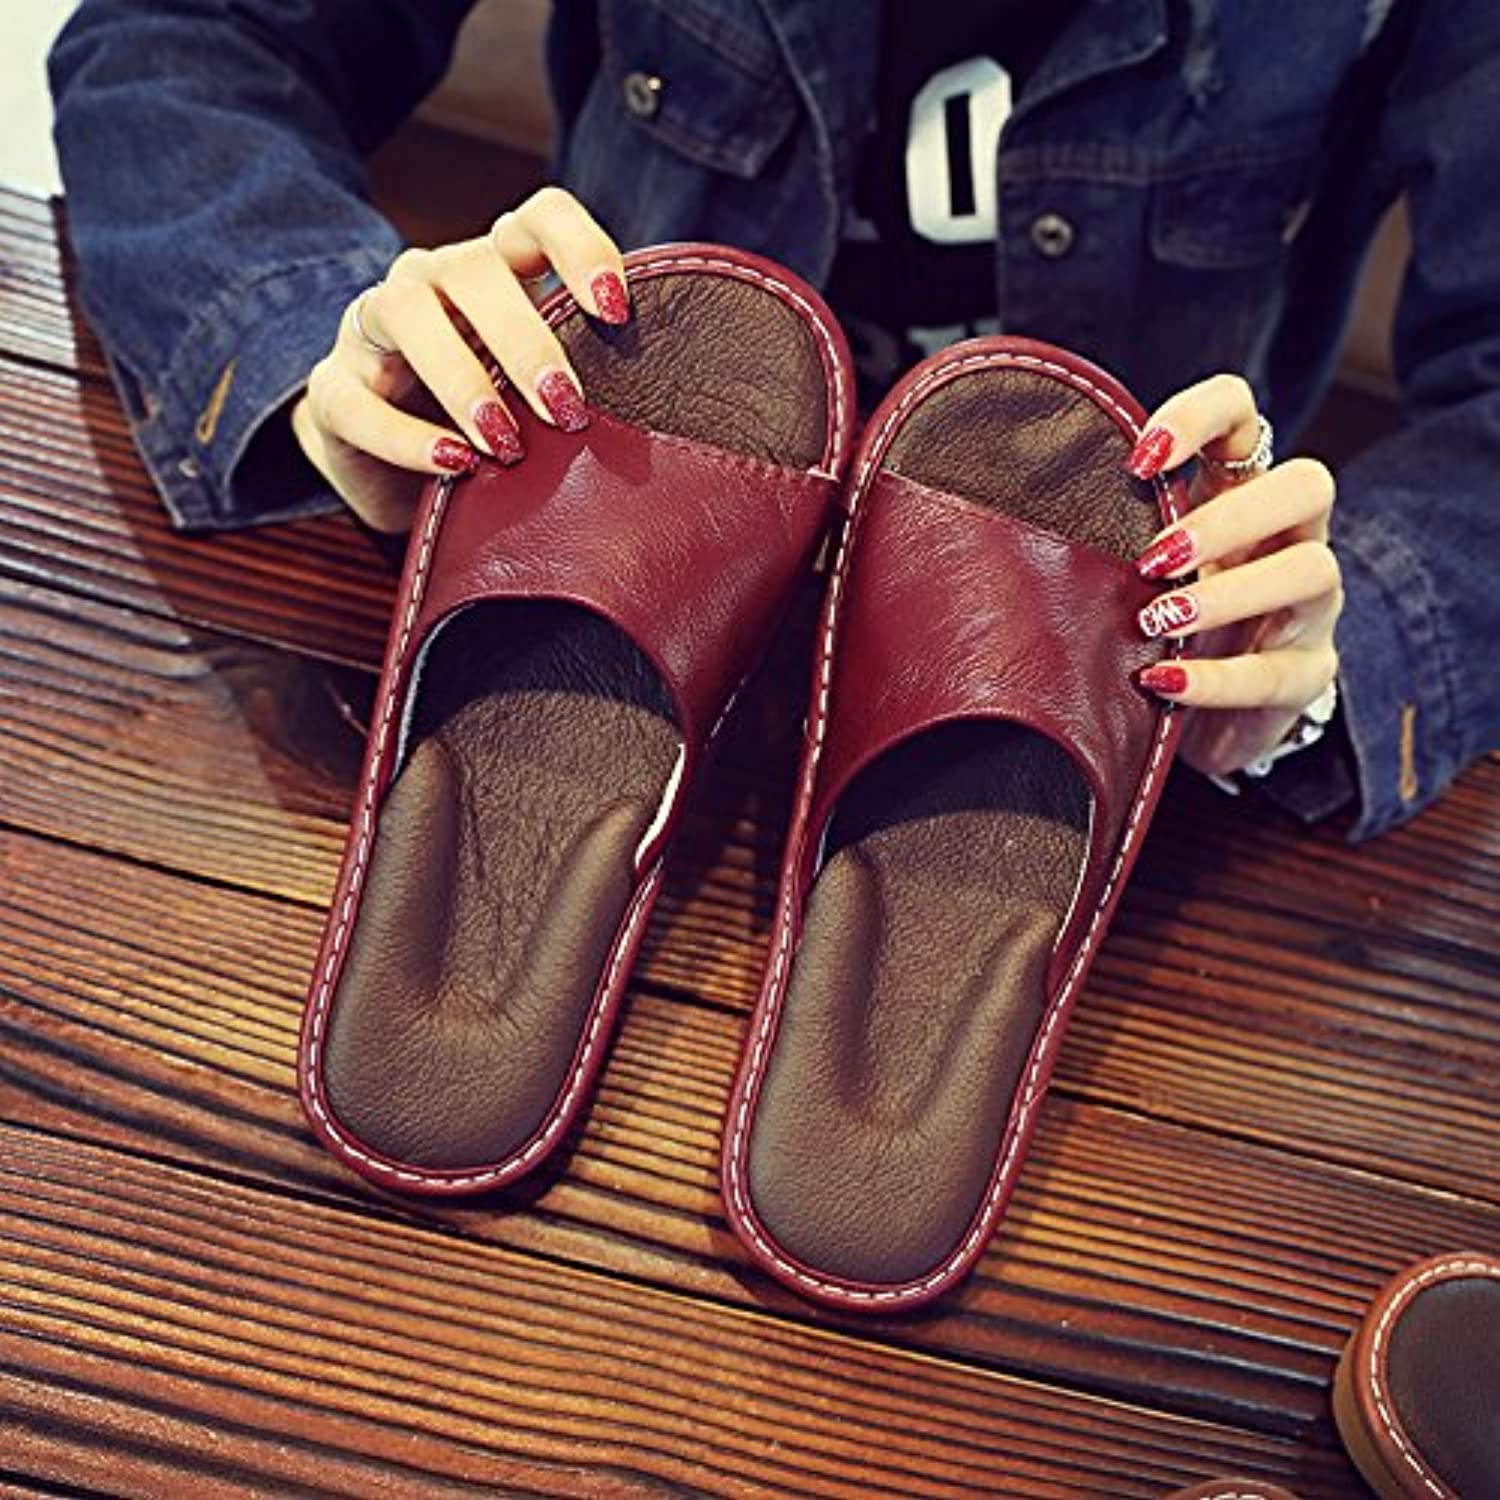 fankou Slippers Female Summer Home Home Interior Wooden Floor Men's Silent Couples Air Cool Slippers,41-42, Wine...